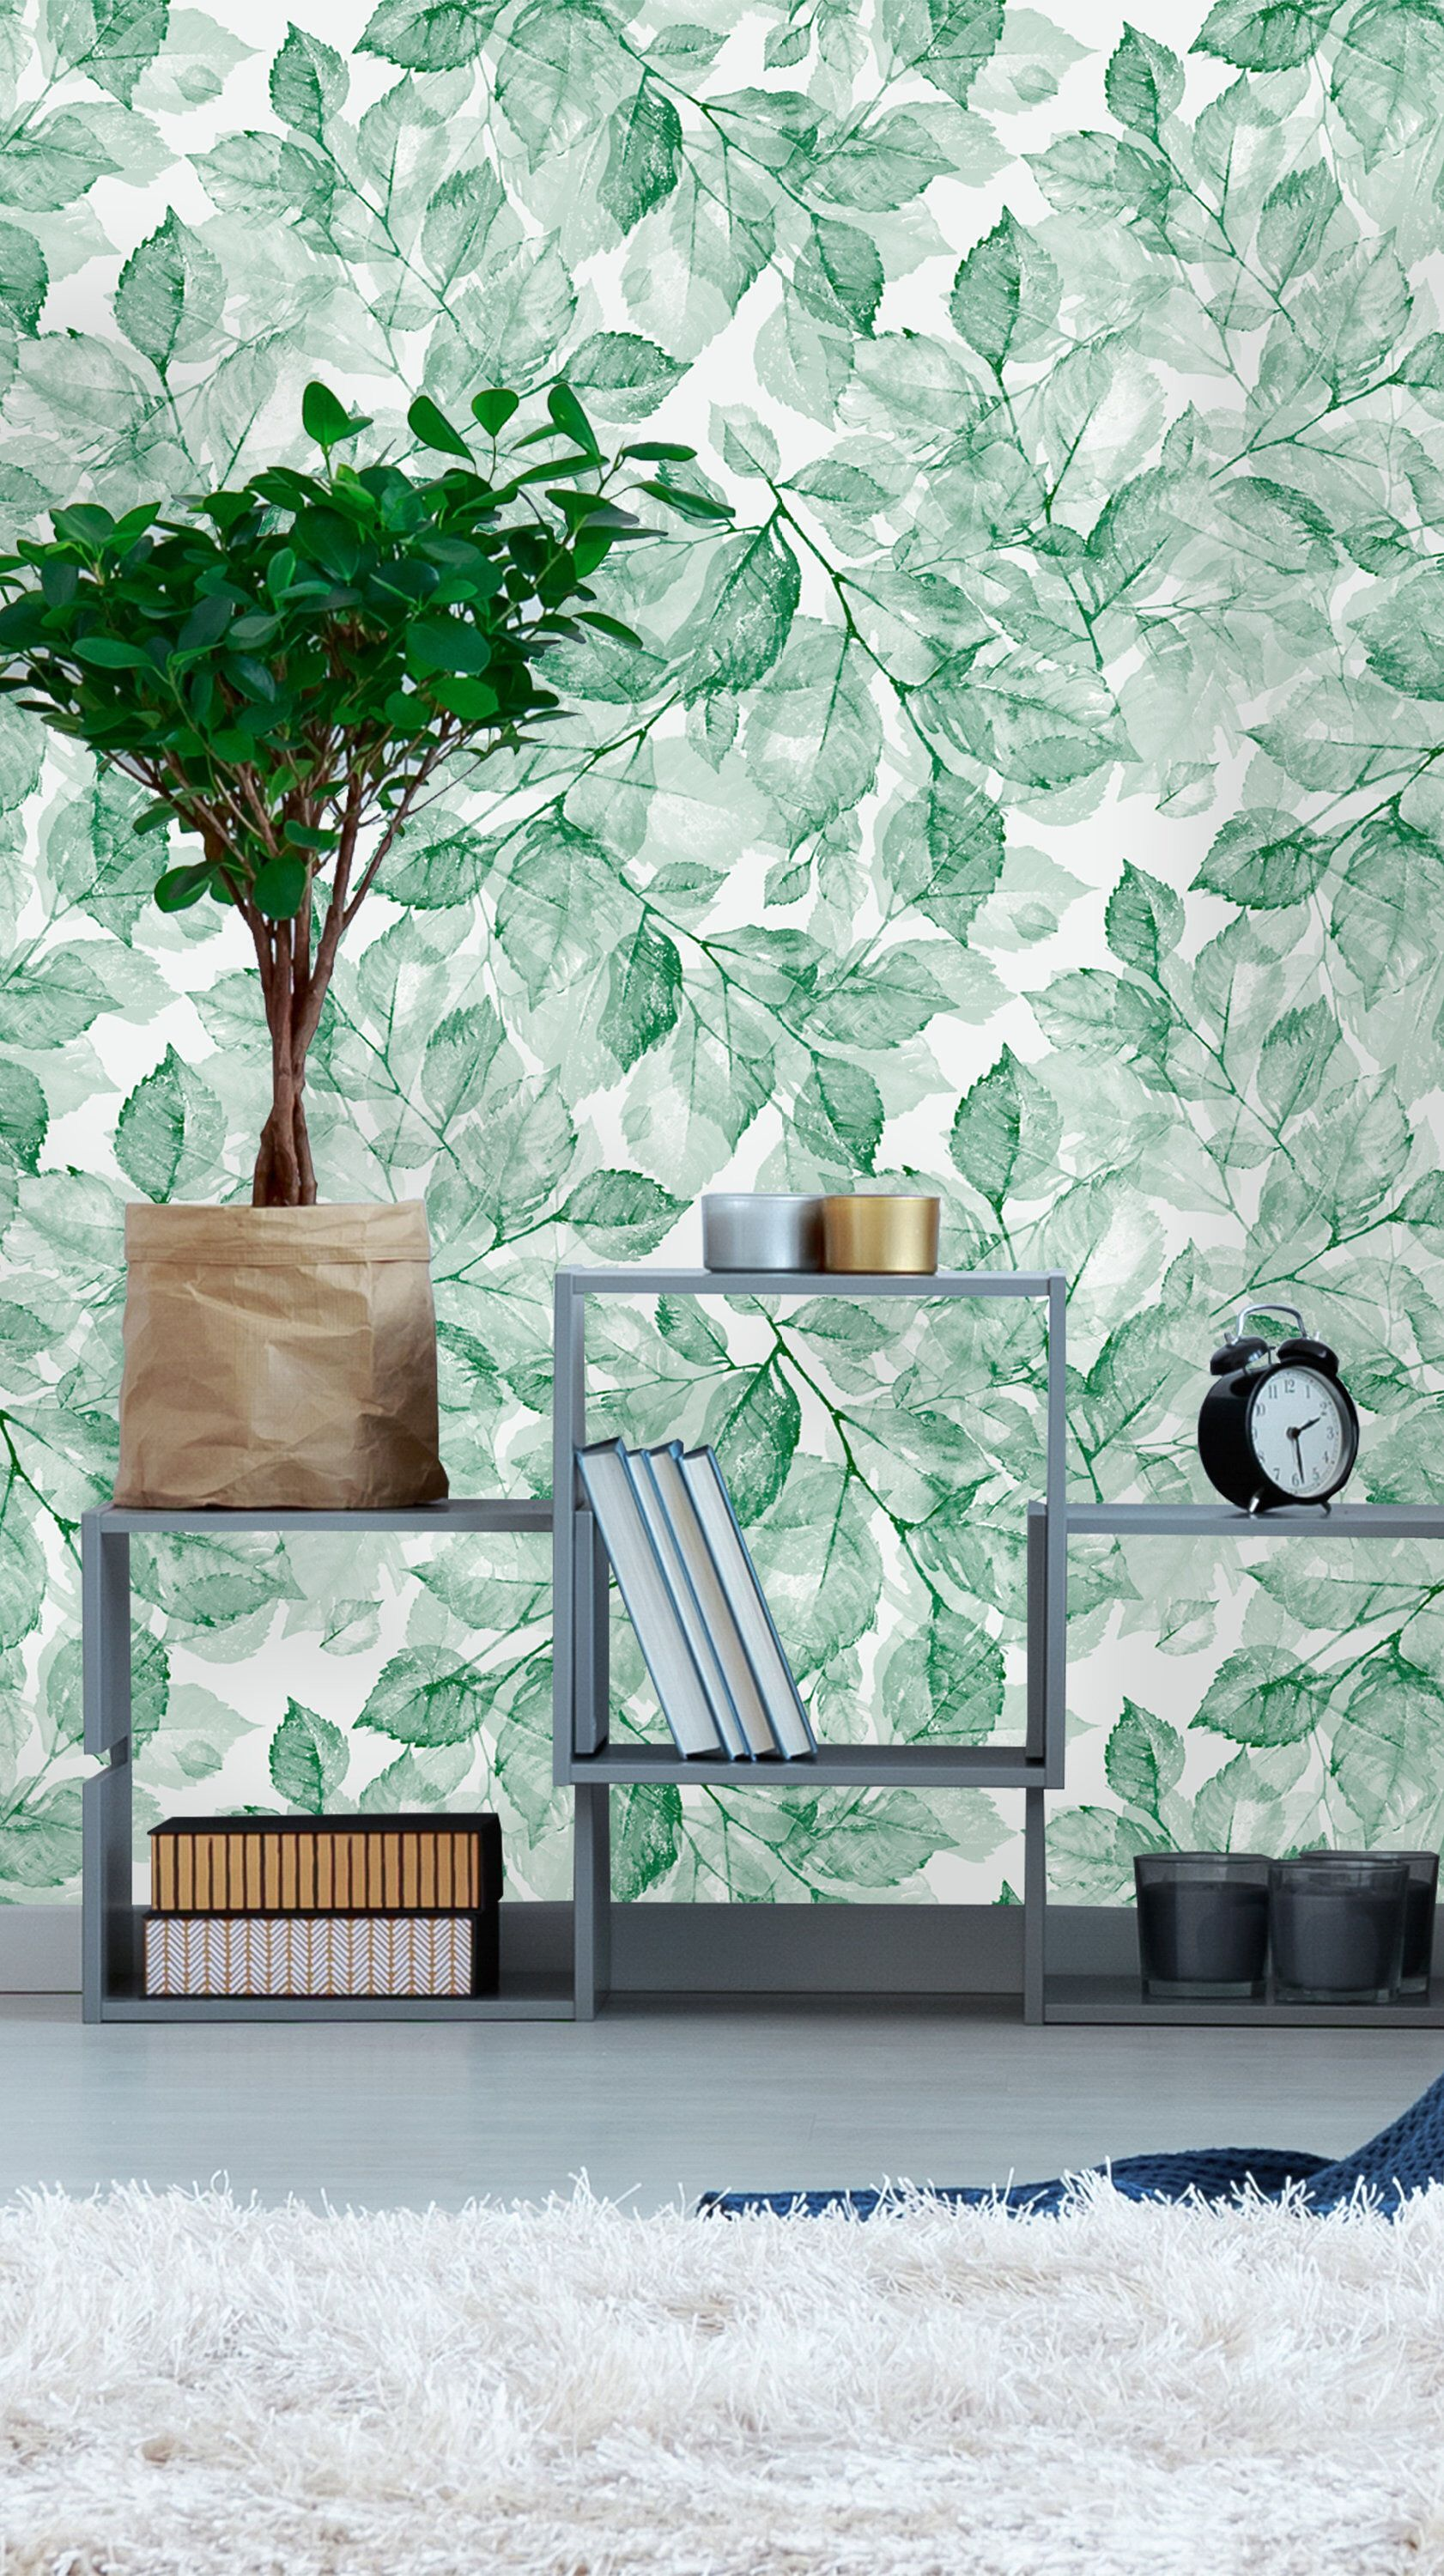 Removable Wallpaper Self Adhesive Wallpaper Green Watercolor Leaves Peel Stick Wallpaper In 2020 Removable Wallpaper Wallpaper Watercolor Leaves